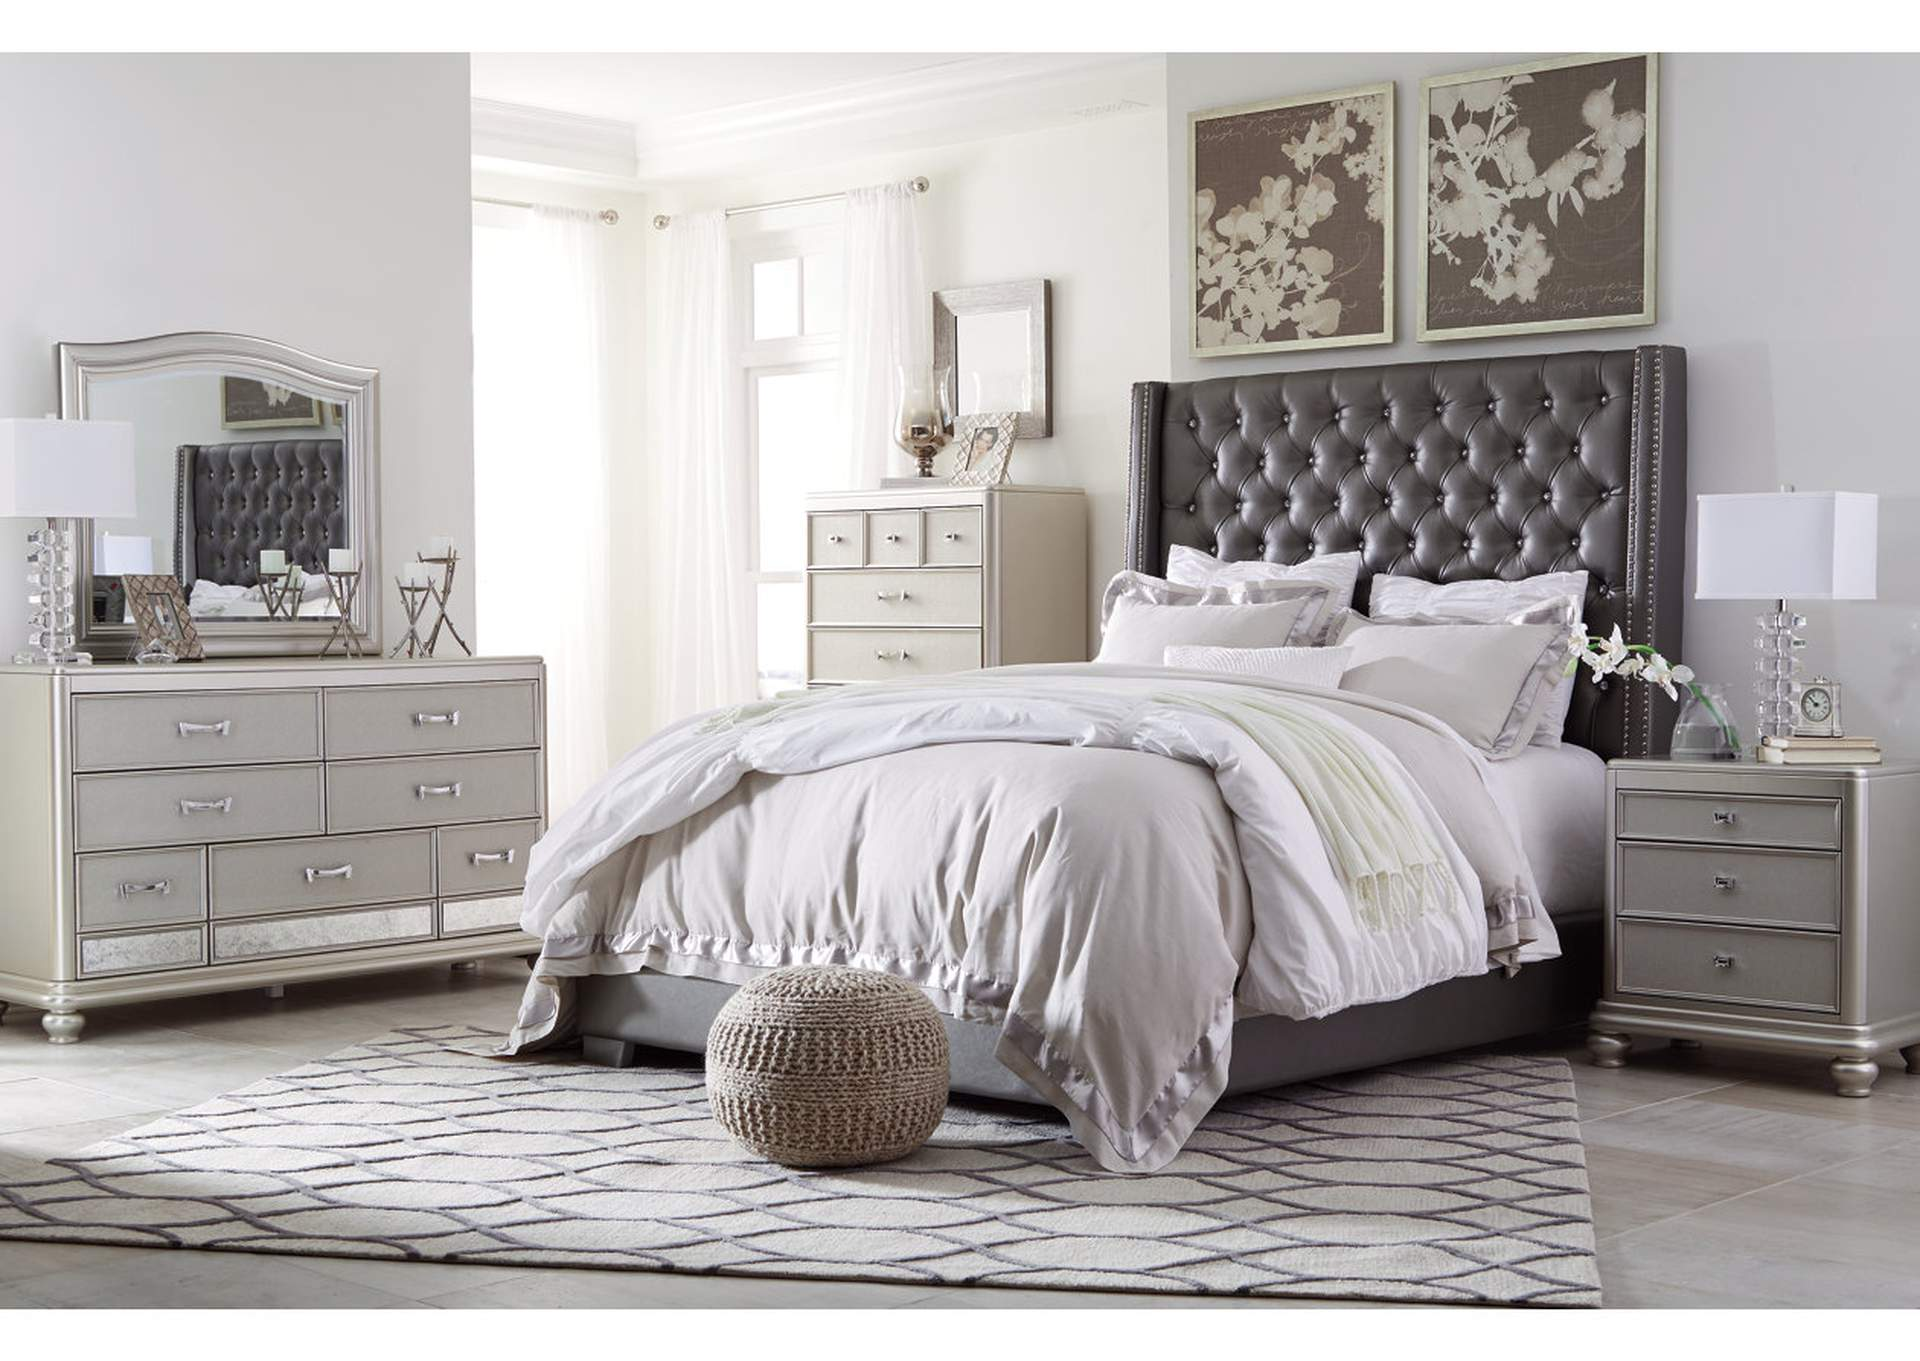 Coralayne Gray Queen Upholstered Bed w/Dresser, Mirror, Drawer Chest & Nightstand,Signature Design by Ashley